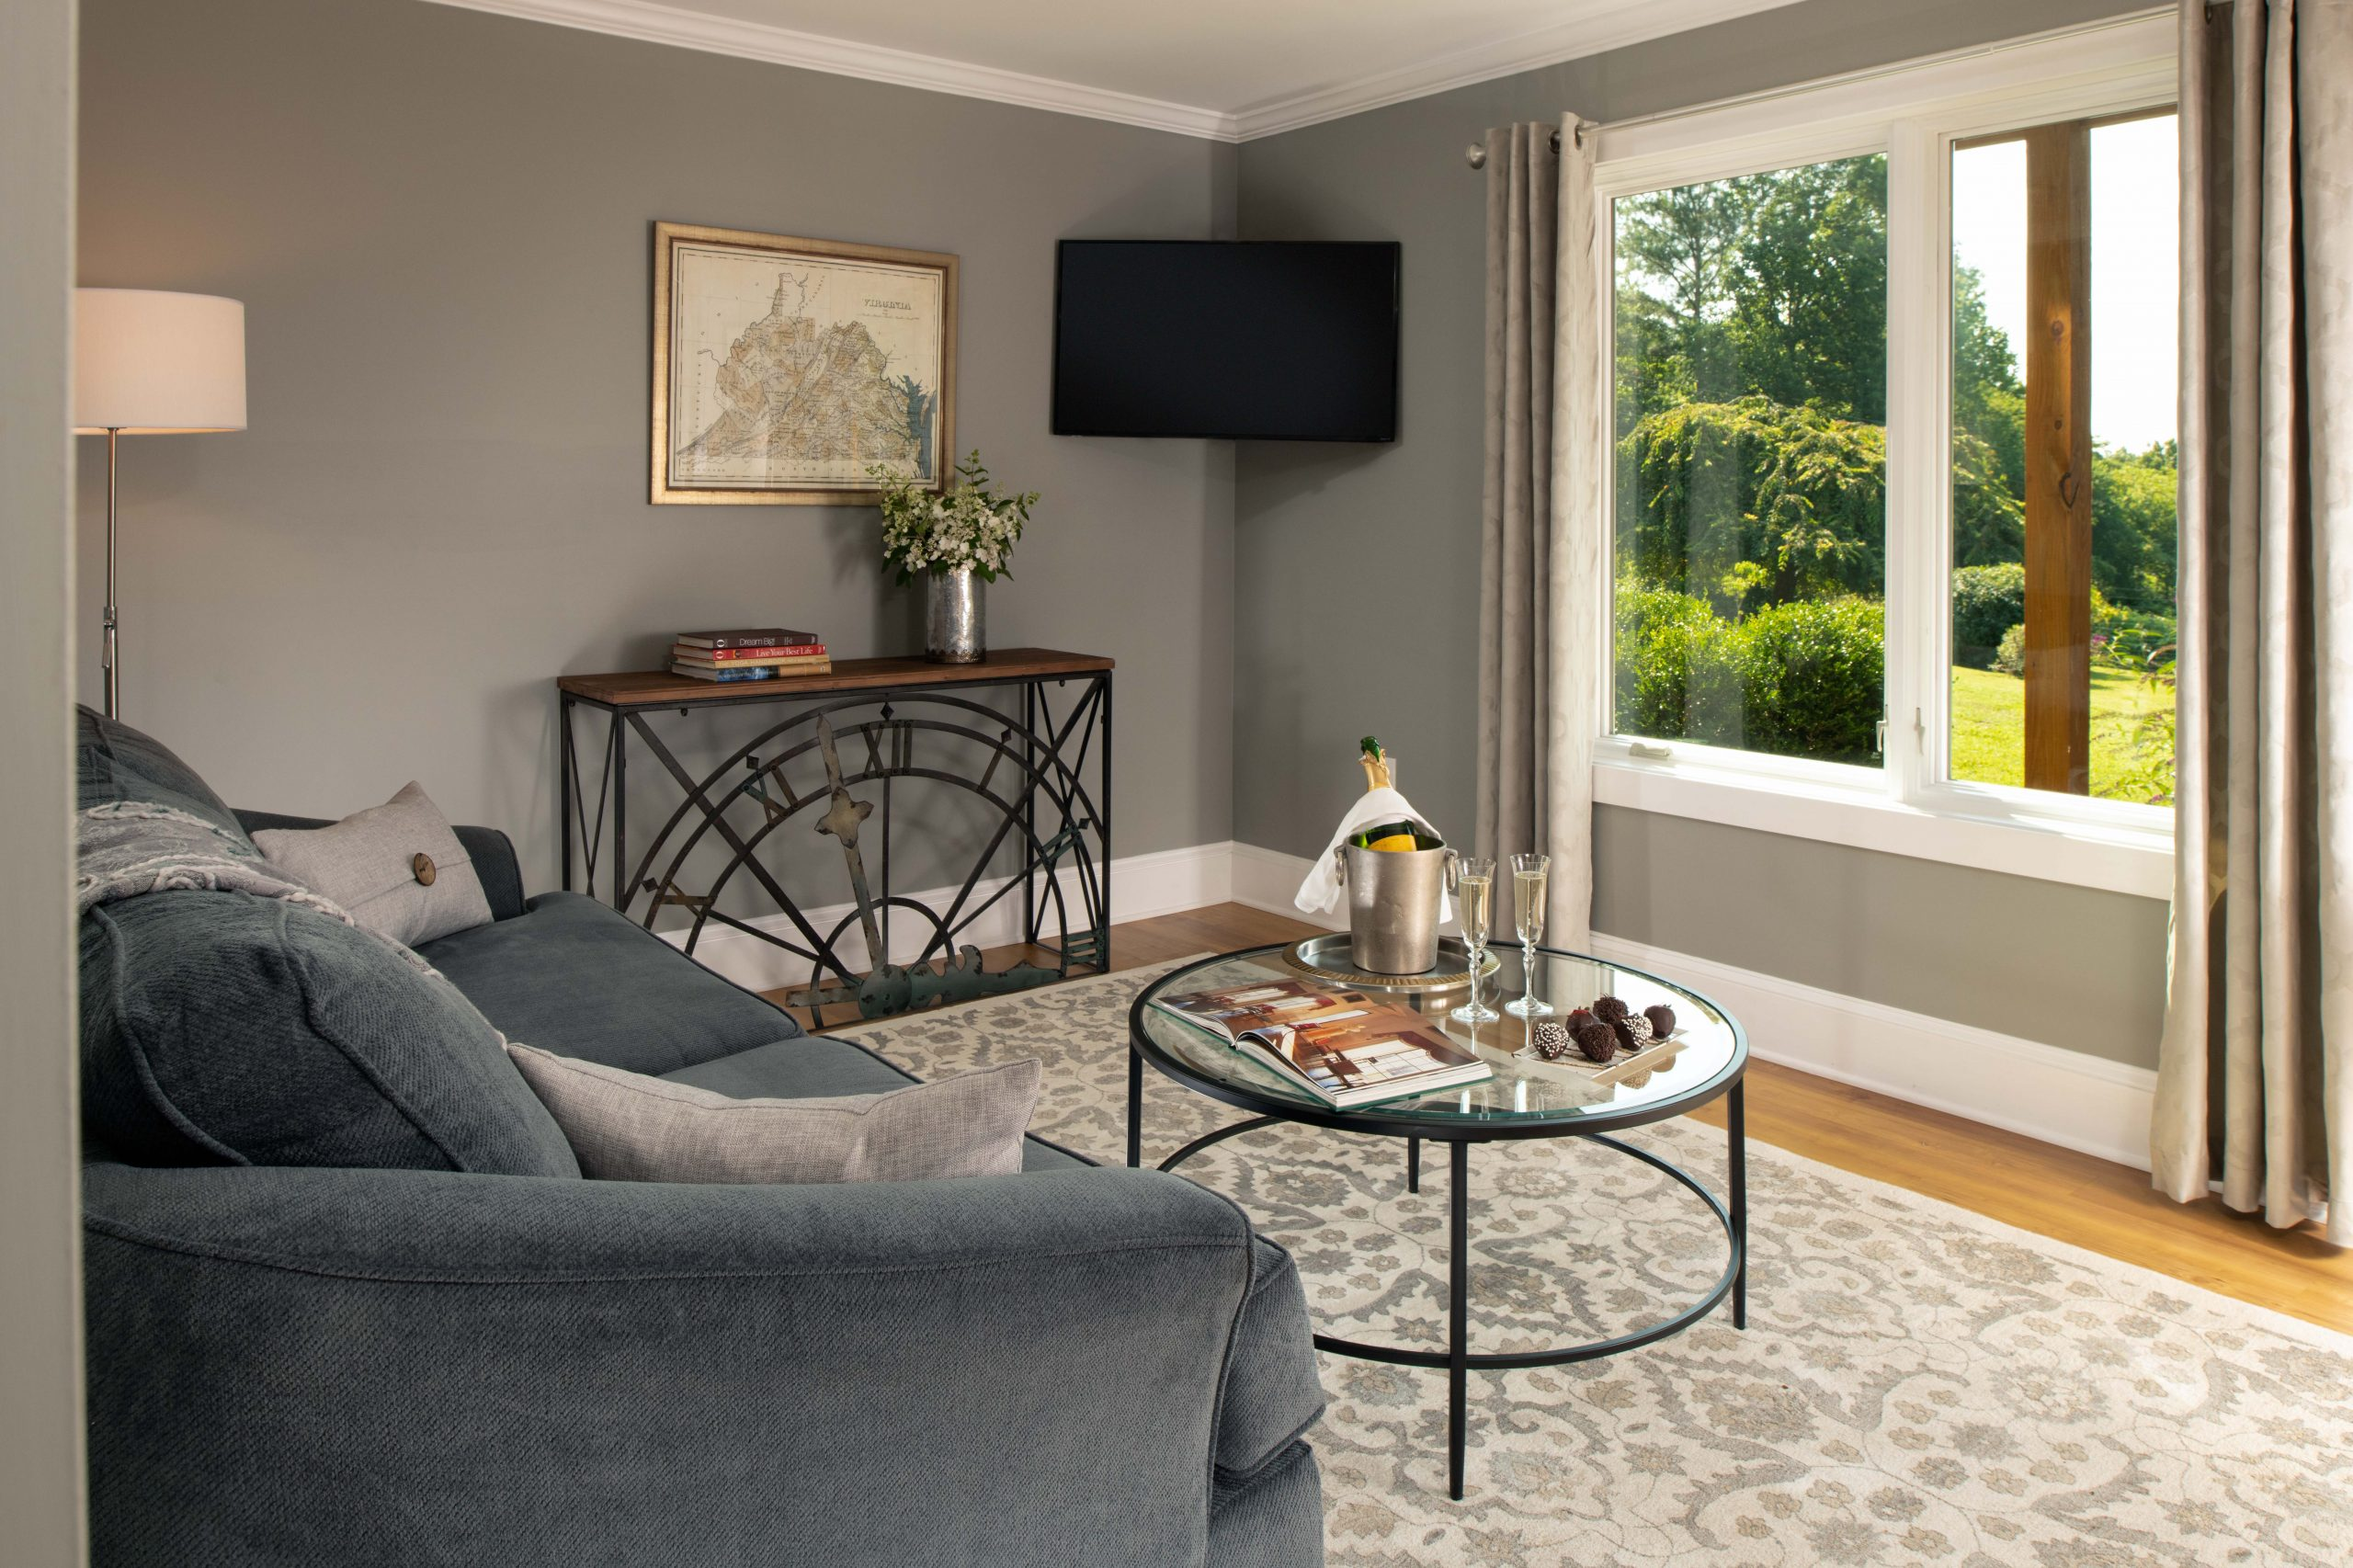 Arcady's Madison Suite sitting room with large windows, light wood floors, area rug, upholstered sofa, tables and TV